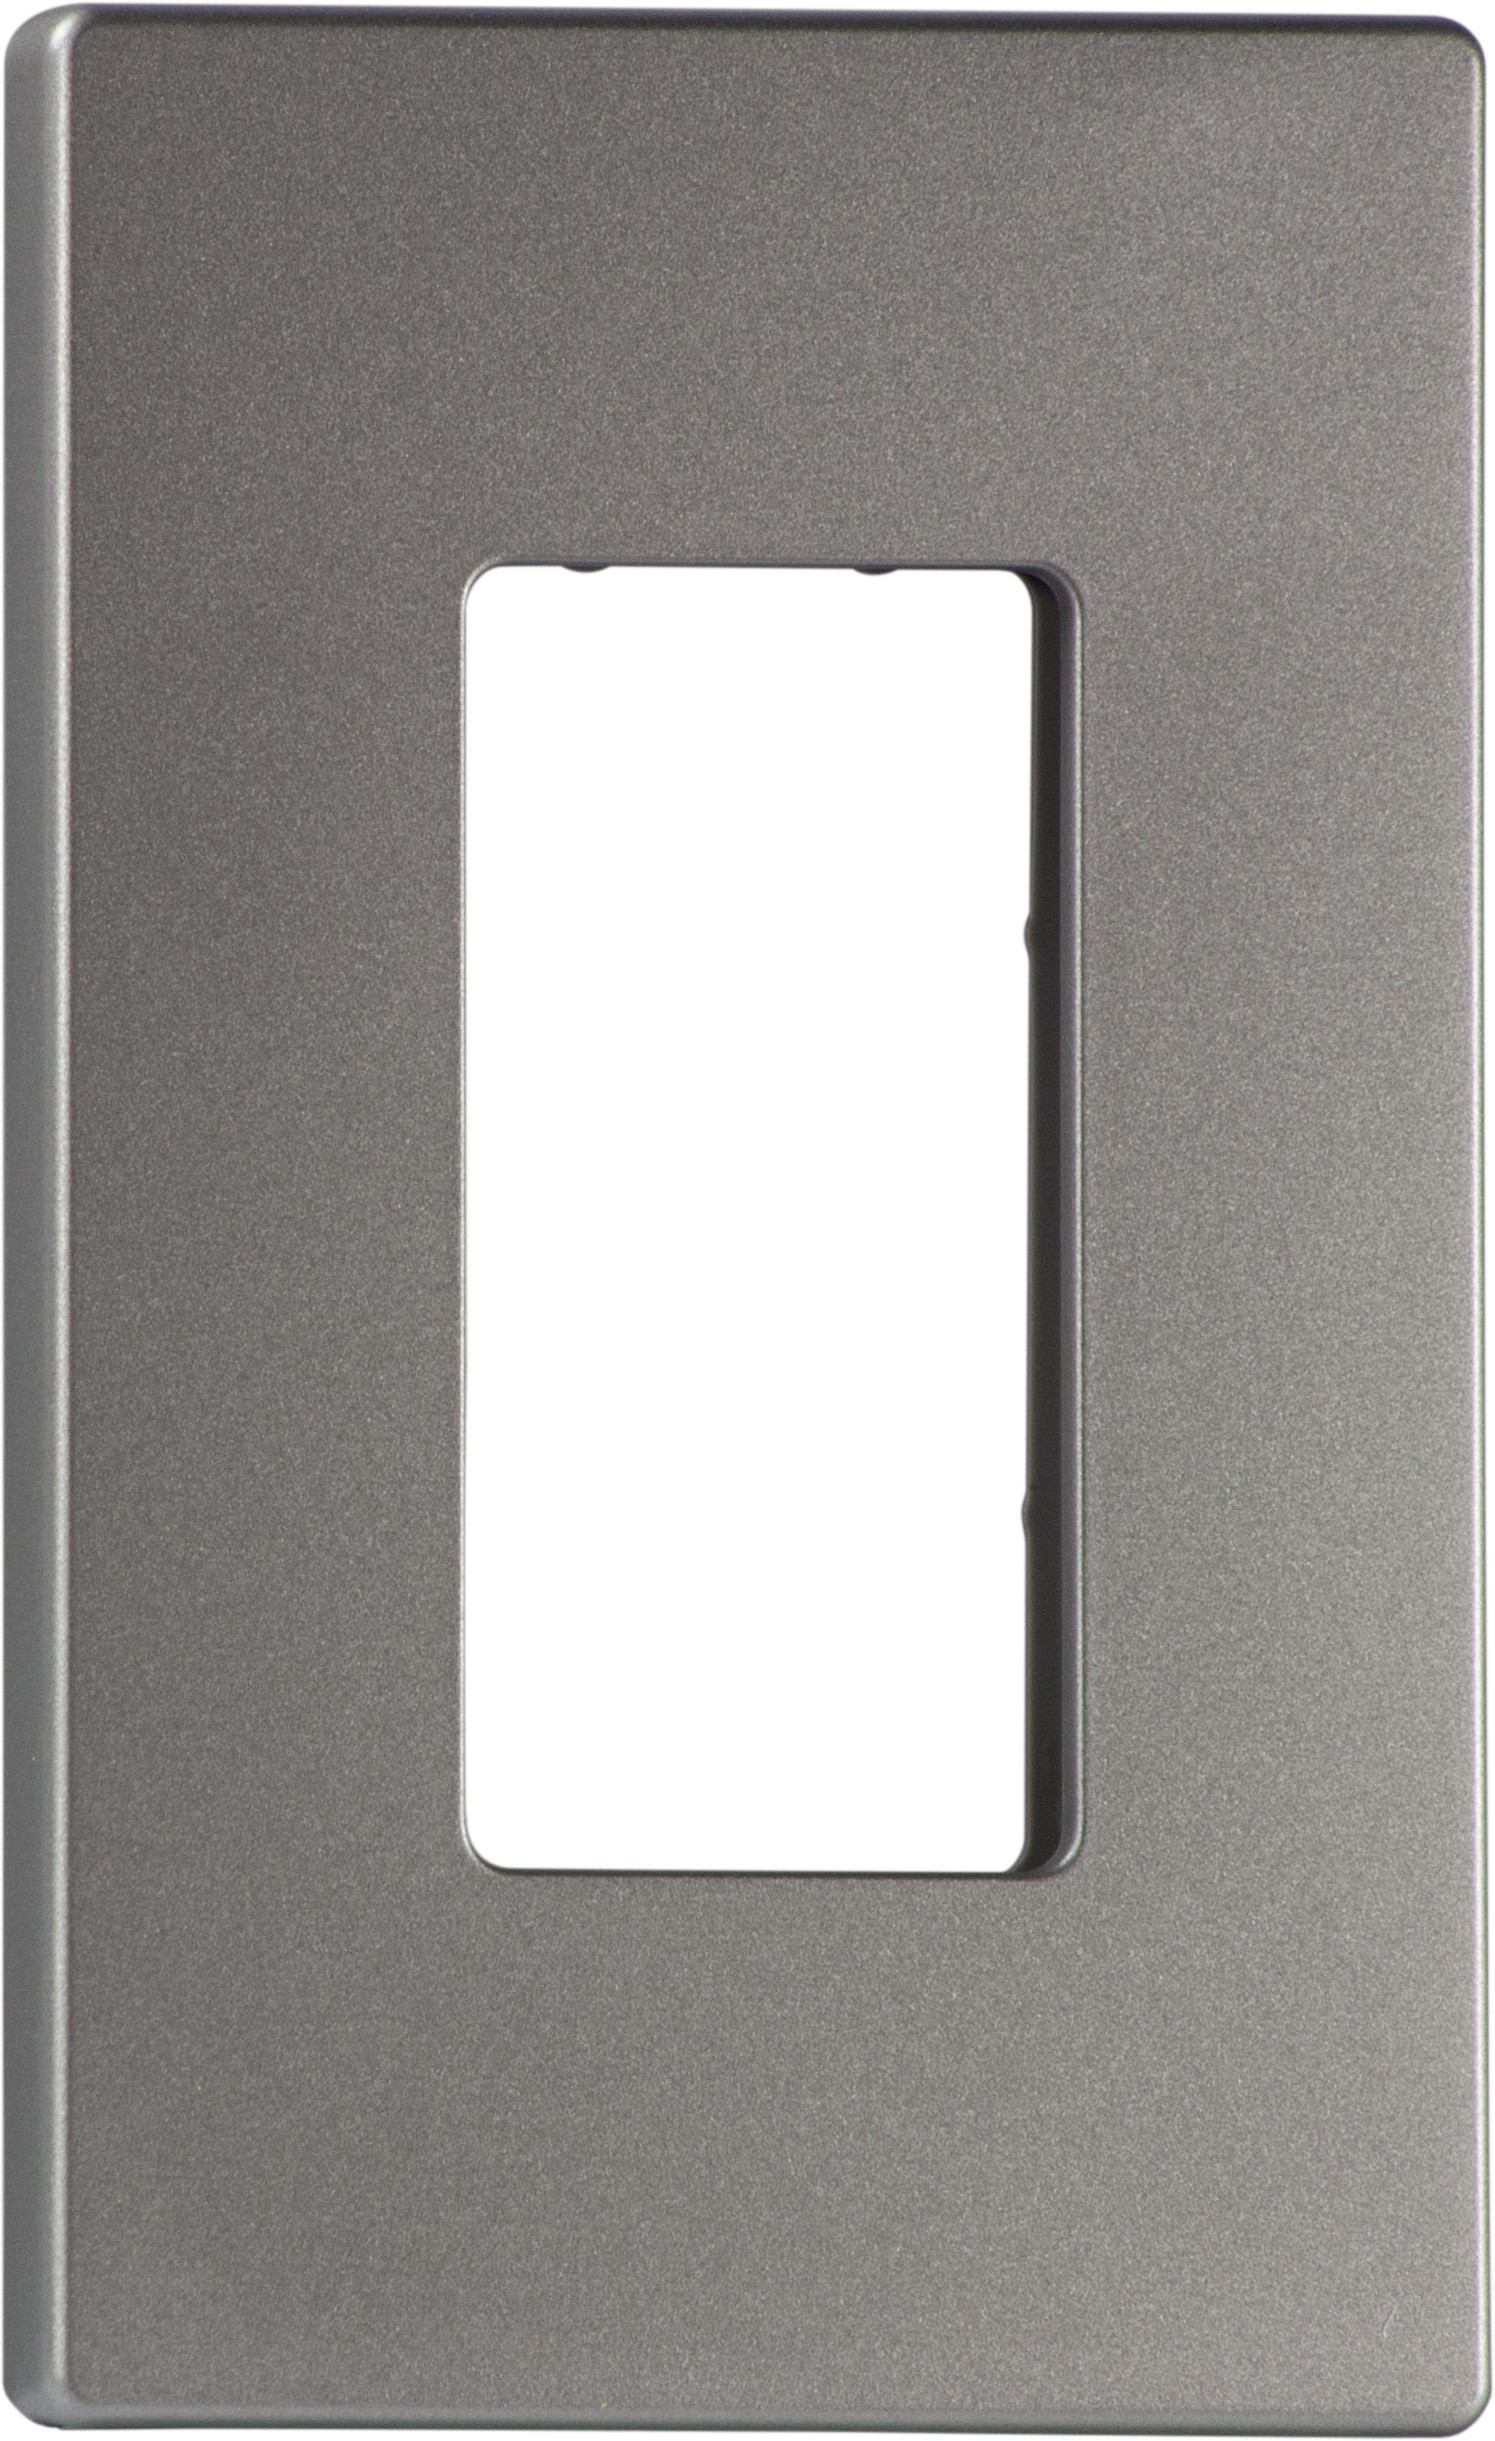 Screwless Switch Plates : screwless, switch, plates, EATON, Wiring, PJS2V, Polycarbonate, 2-Gang, Screwless, Toggle, Switch, Plate, Ivory, Plates, Tools, Improvement